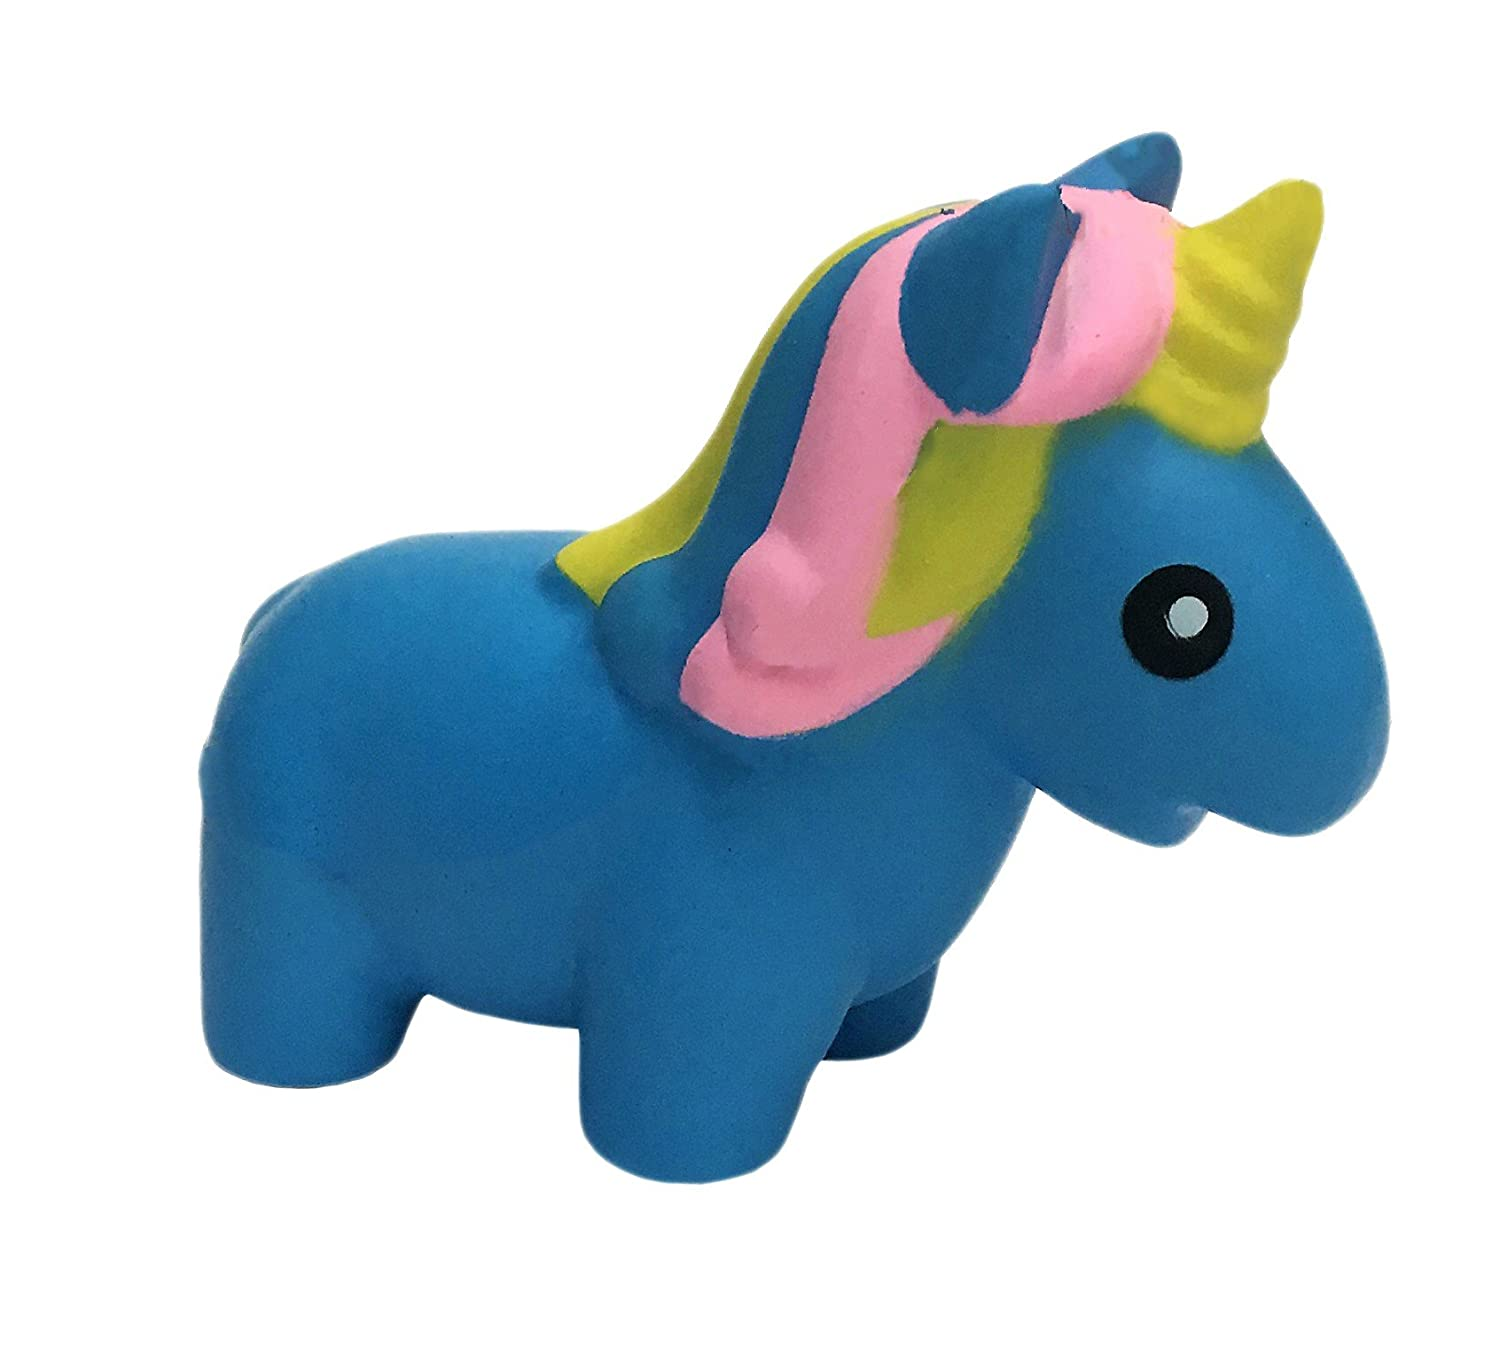 Squeeze Me Mini Unicorns The Squishy Version Fun Toy for Parties Gifts Decorations Collect Them Display Them Assorted Colors Flash Sales Any Color FBA